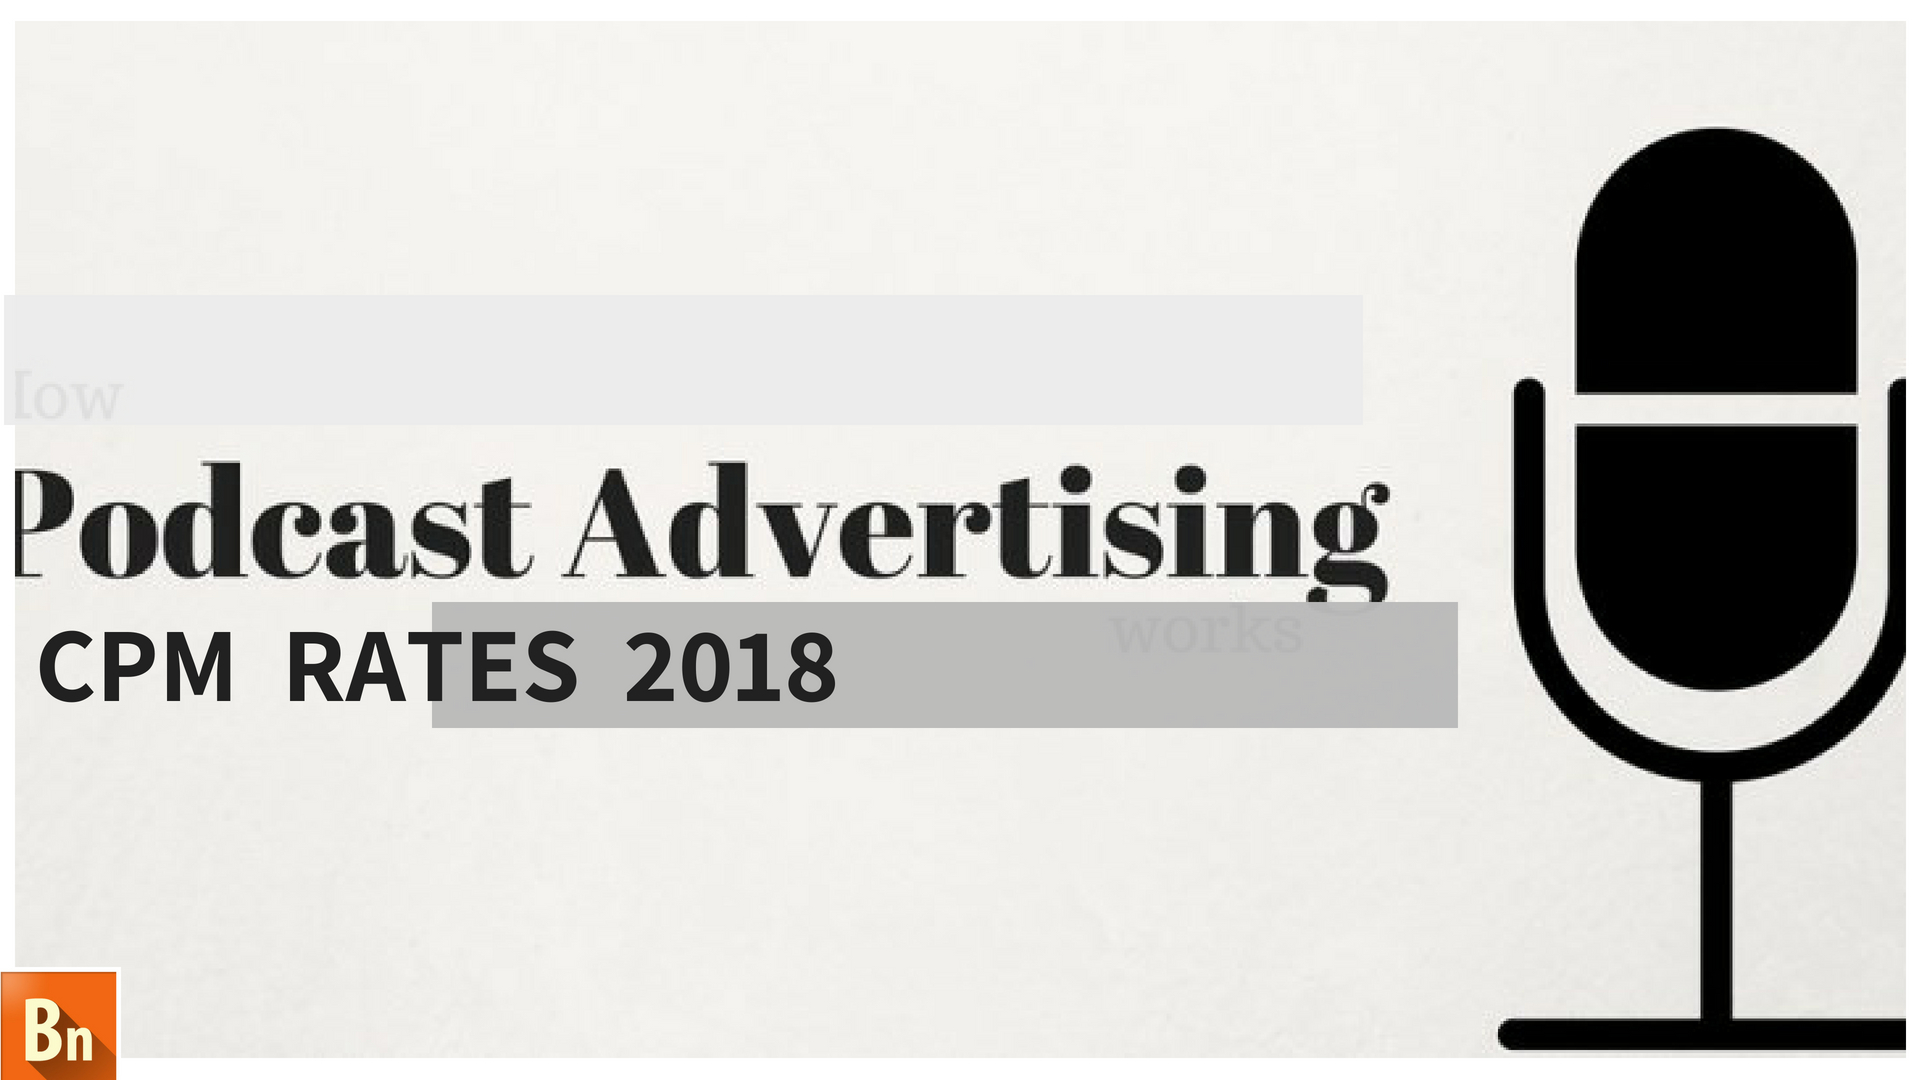 Podcast Advertising CPM Rates 2018